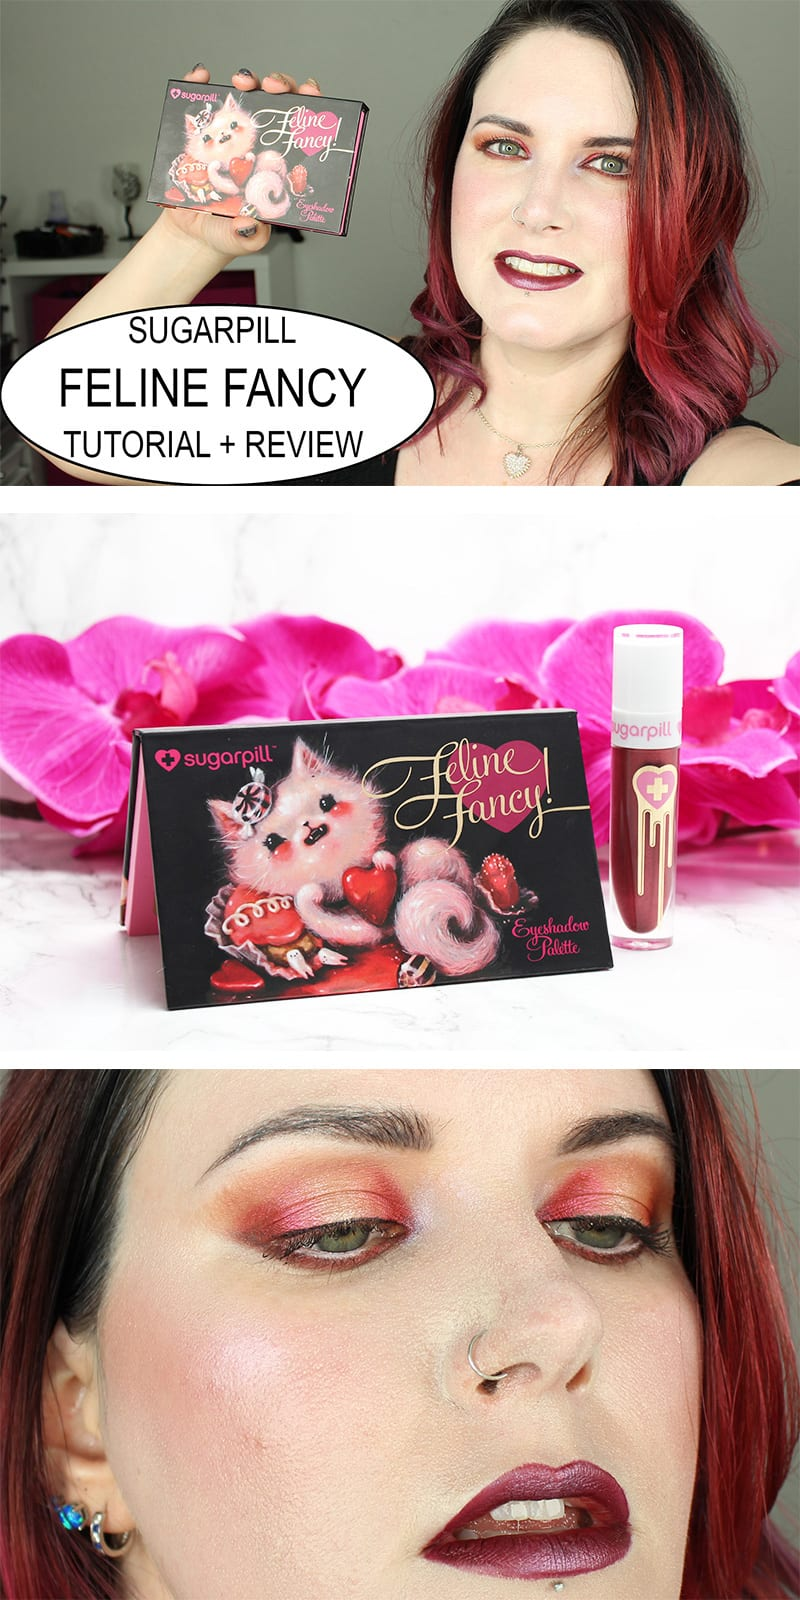 Sugarpill Feline Fancy Review and Tutorial